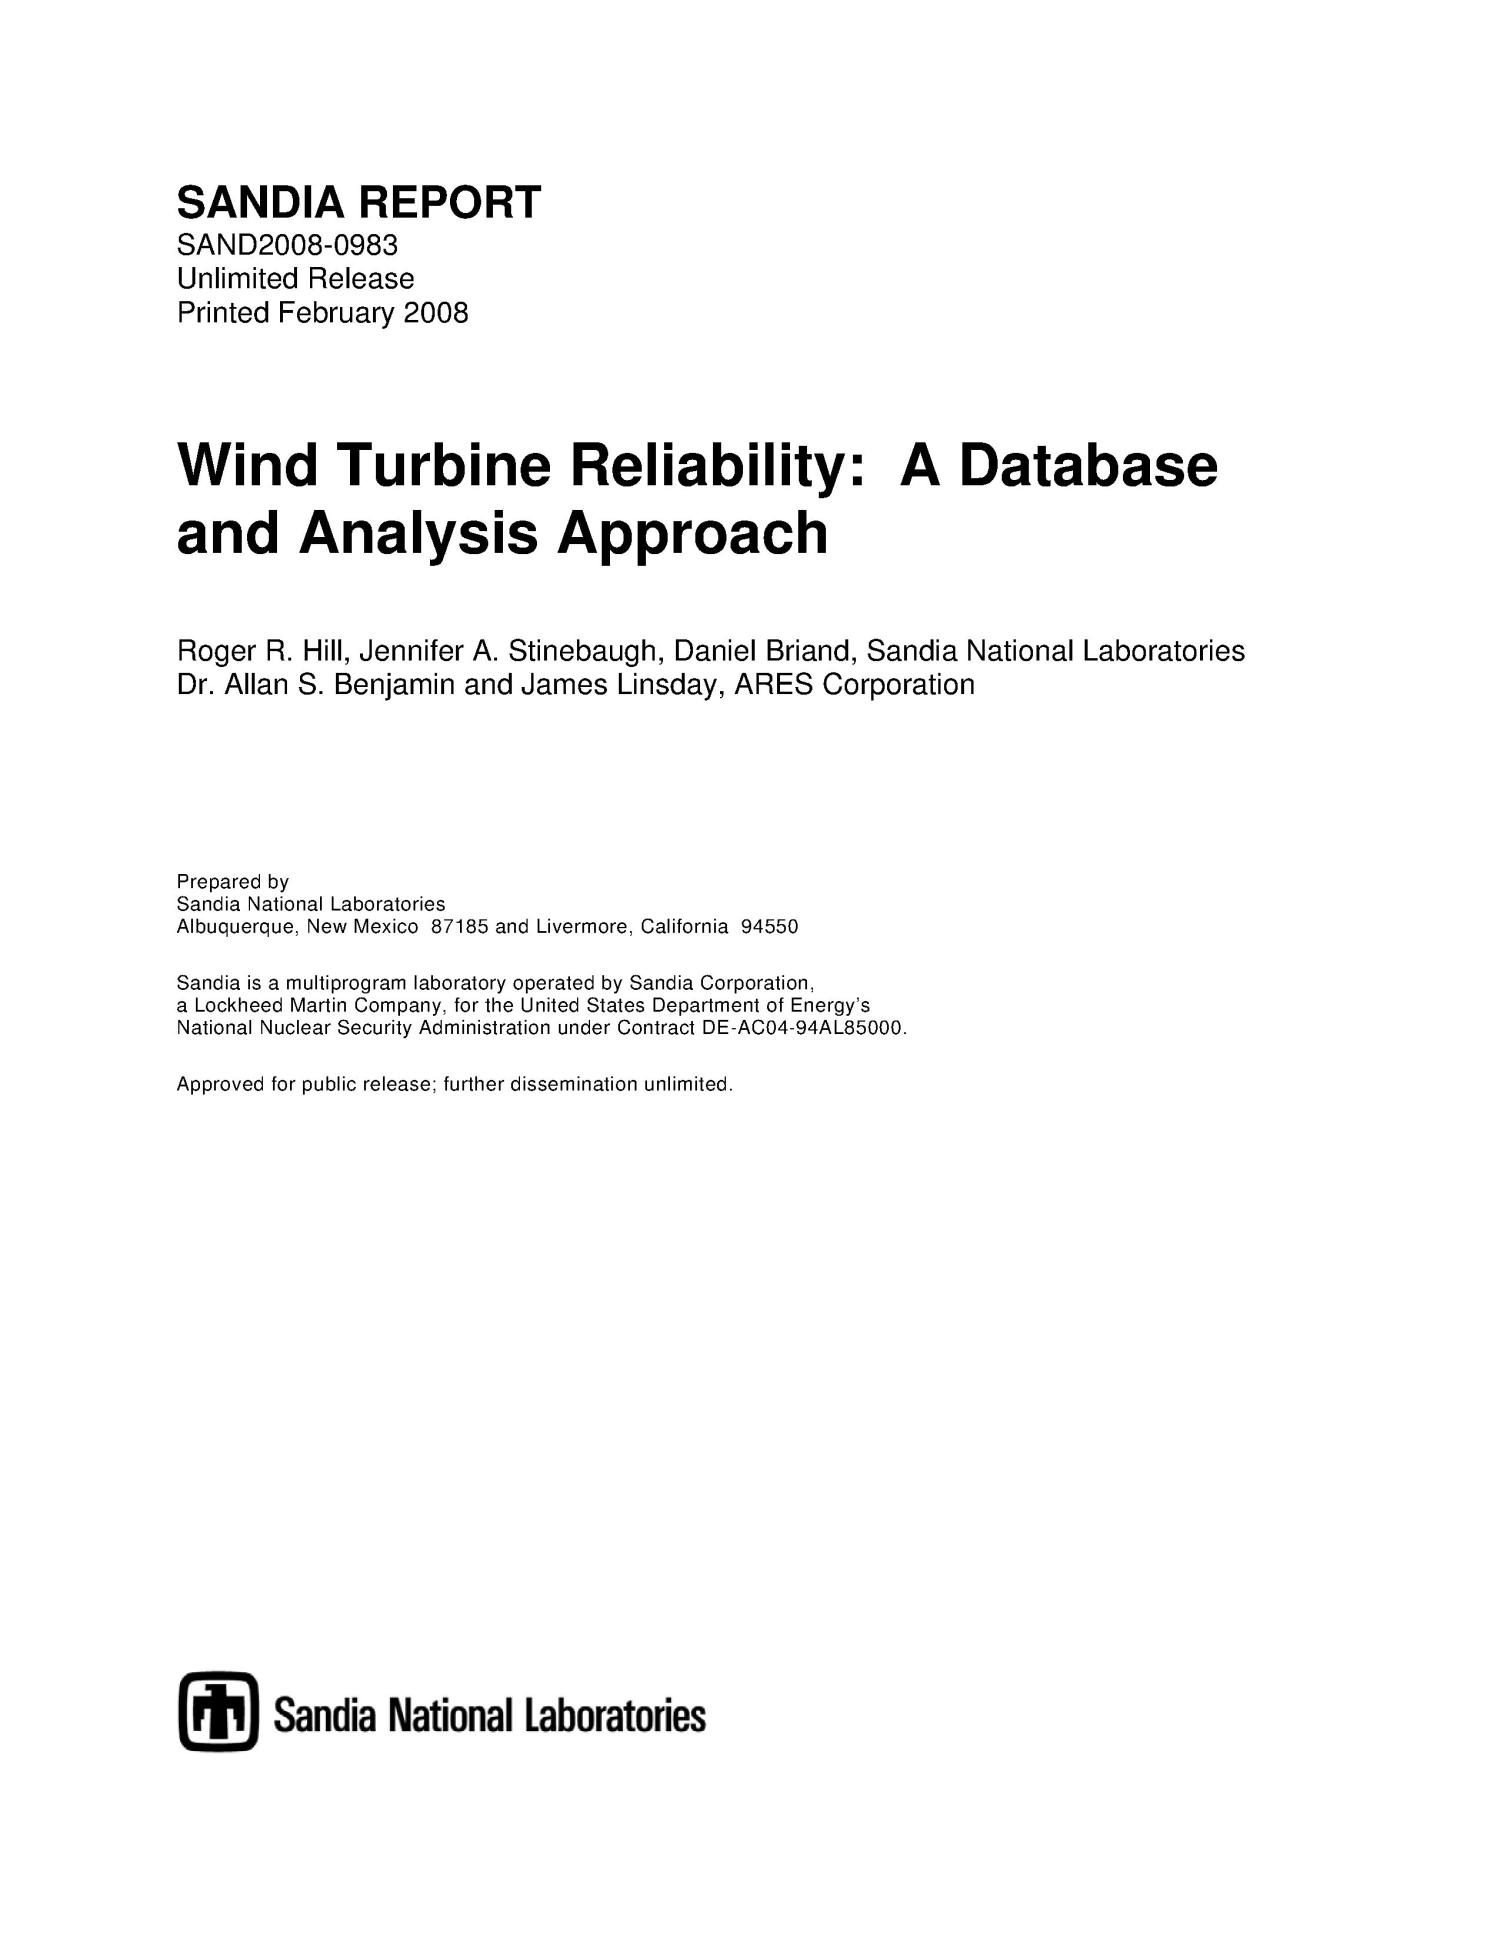 Wind turbine reliability : a database and analysis approach.                                                                                                      [Sequence #]: 1 of 72